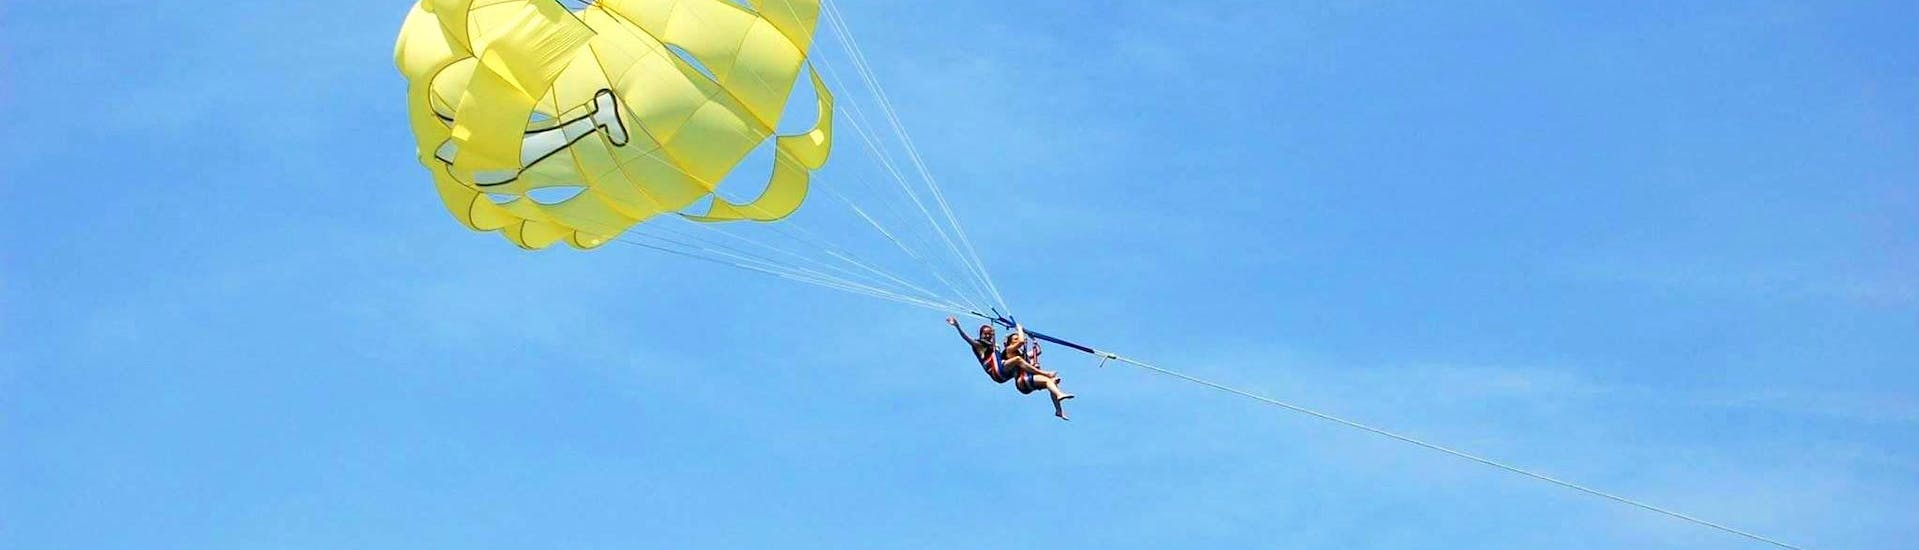 Friends are having fun while Parasailing in Cagnes-sur-Mer with Plage des Marines.